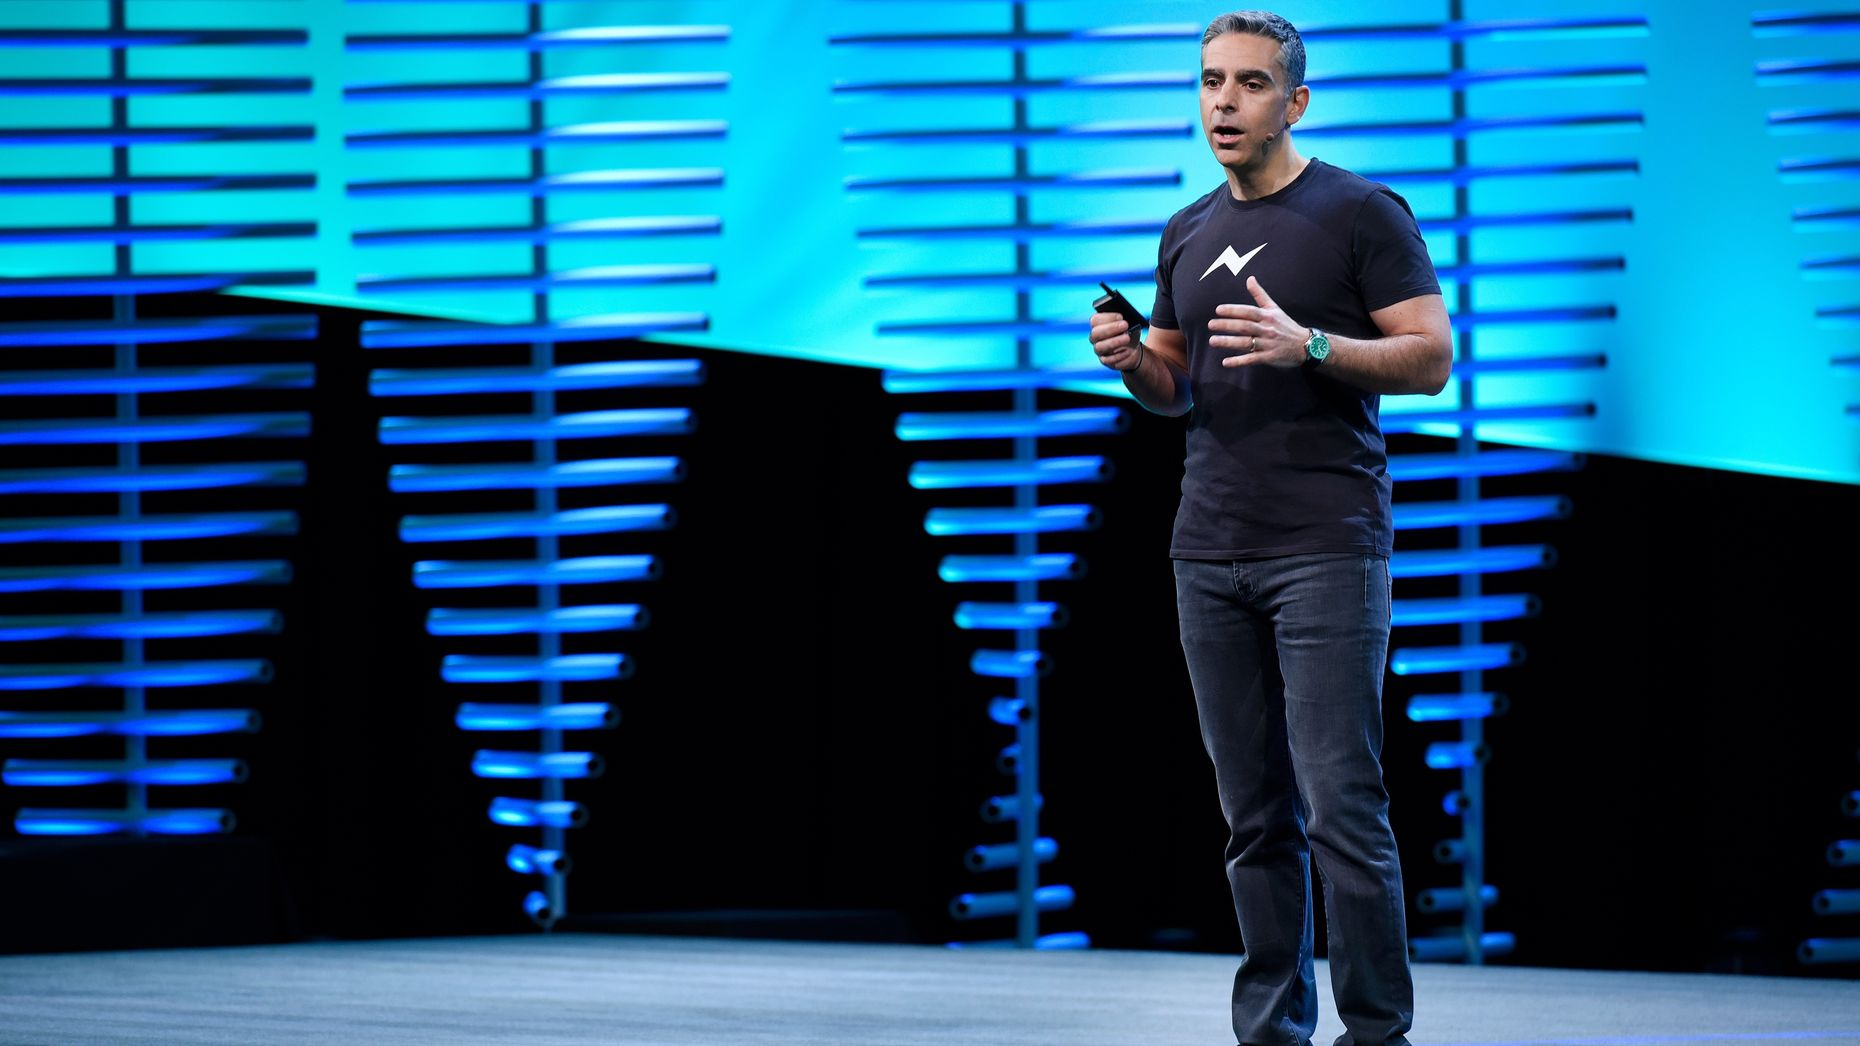 Facebook's VP for messaging products, David Marcus. Photo by Bloomberg.